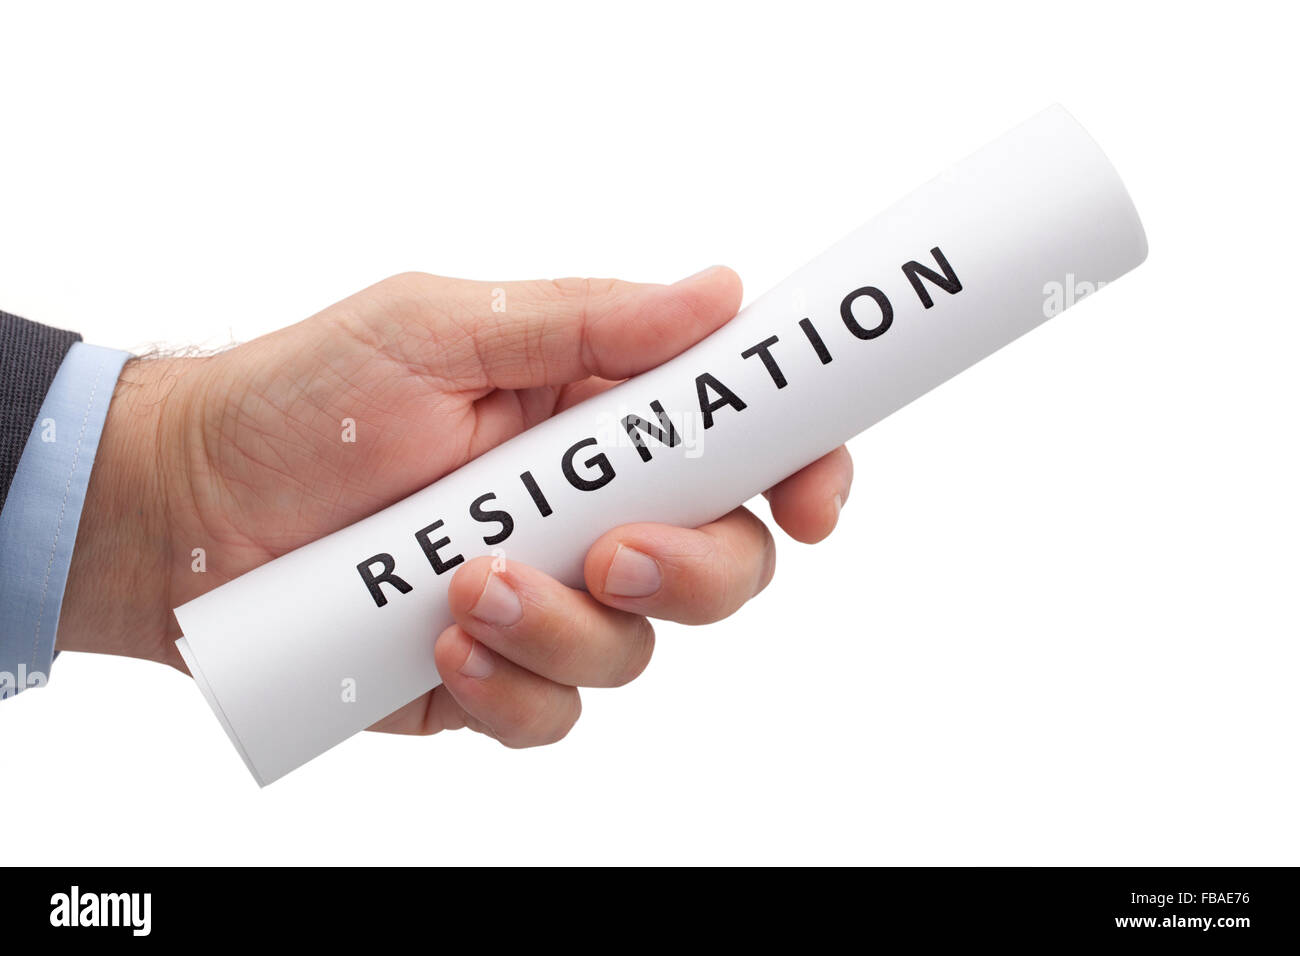 Man in a suit gives a rolled letter of resignation isolated on white background. Image with clipping path. - Stock Image